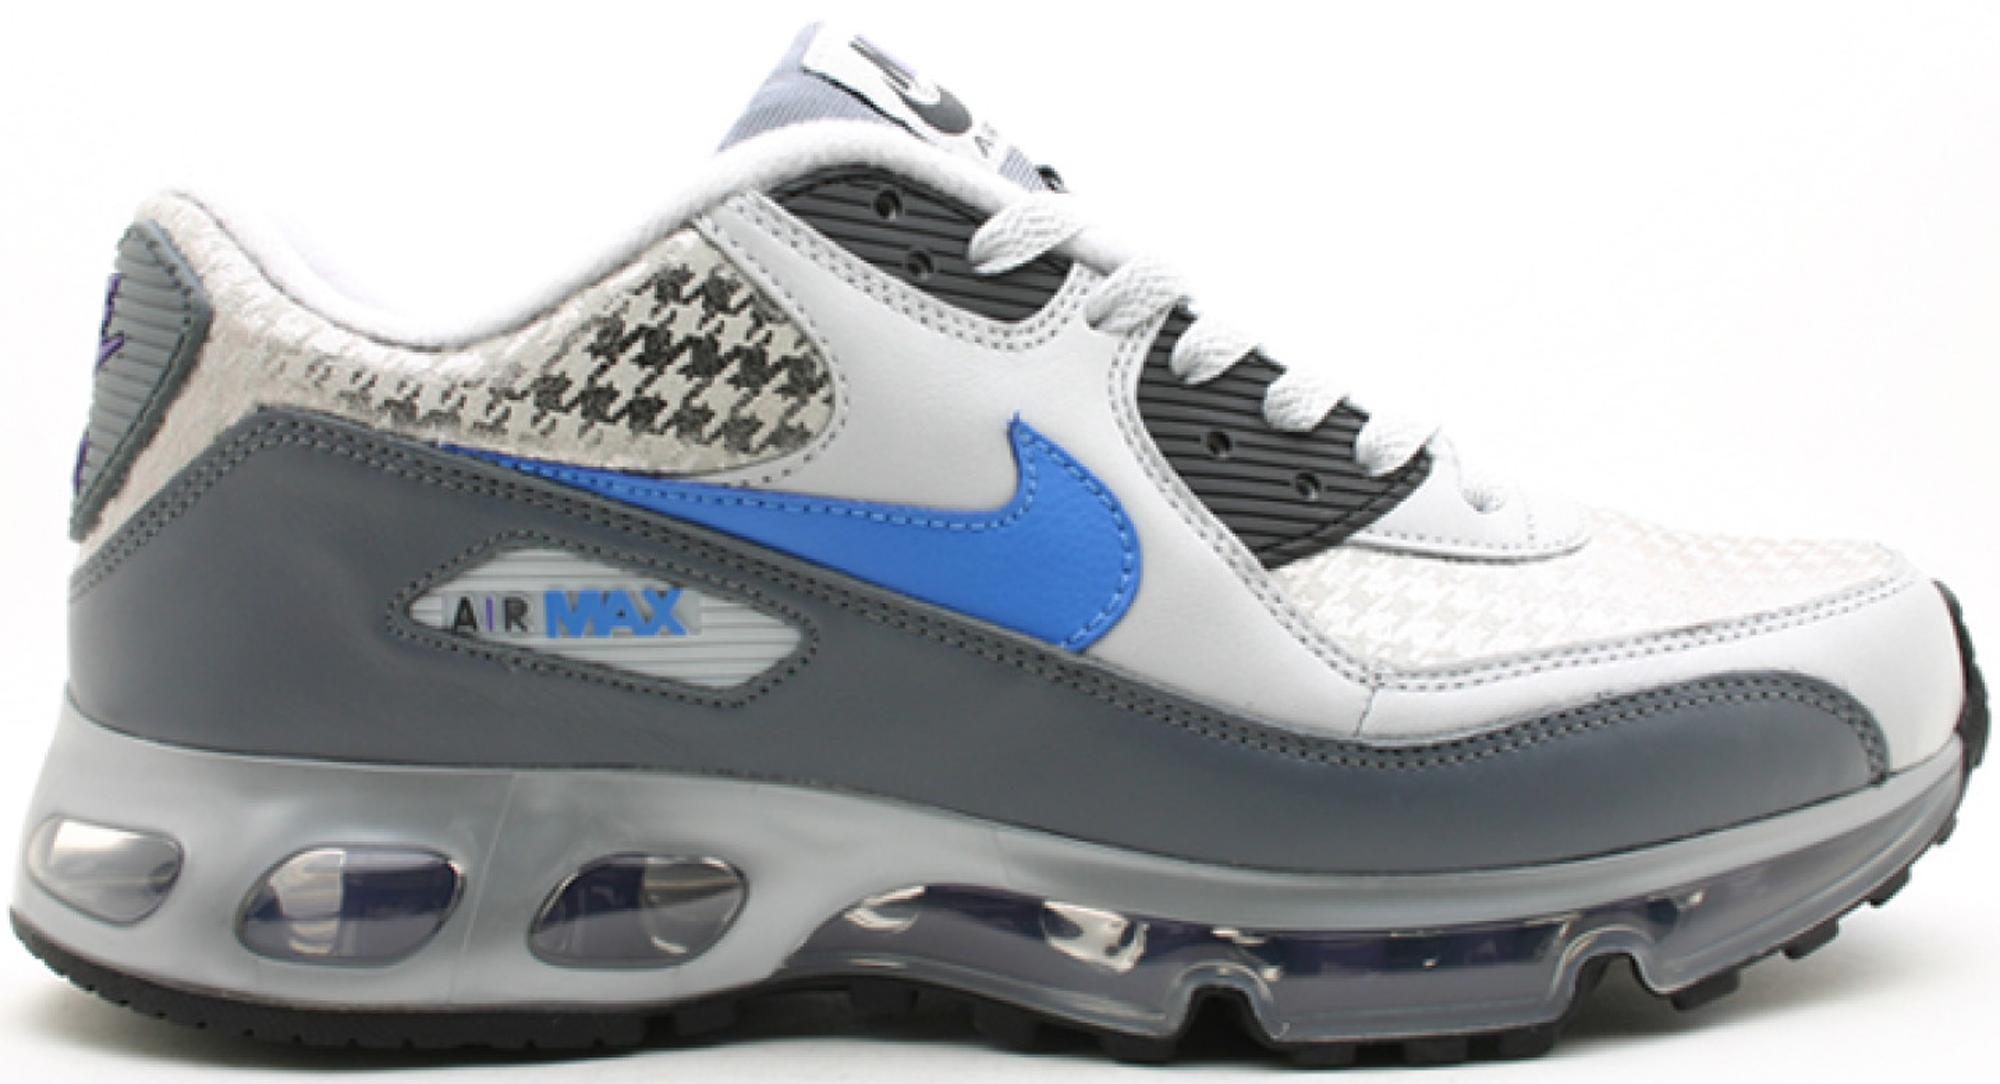 Air Max 90 Premium cracked metallic suede, leather and mesh sneakers